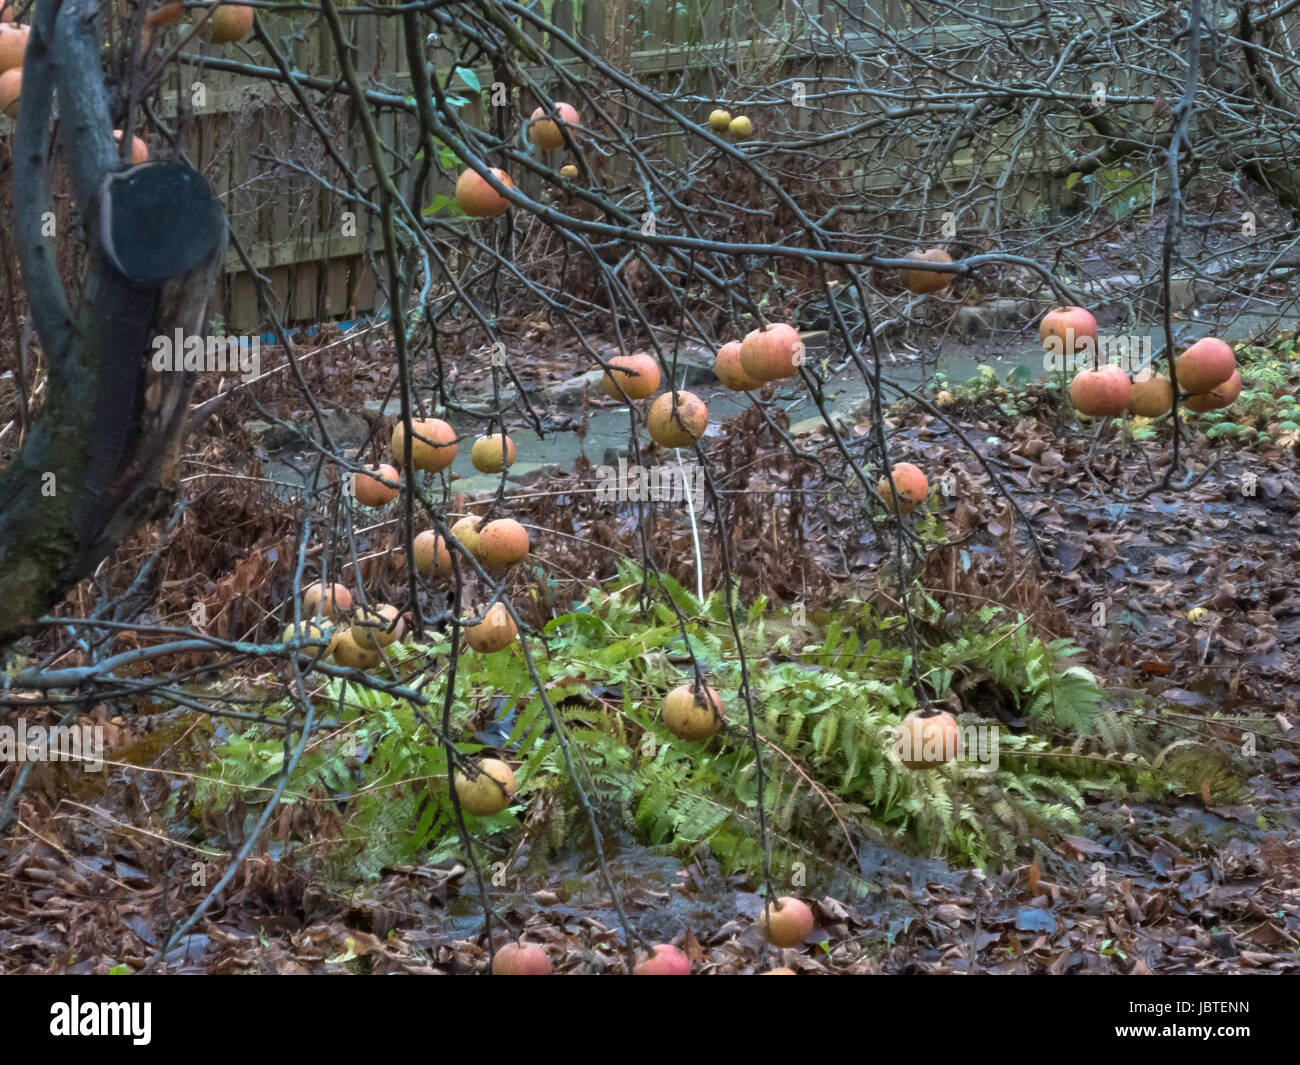 Äpfel am Baum im Spätherbst / apples on tree in late autumn - Stock Image